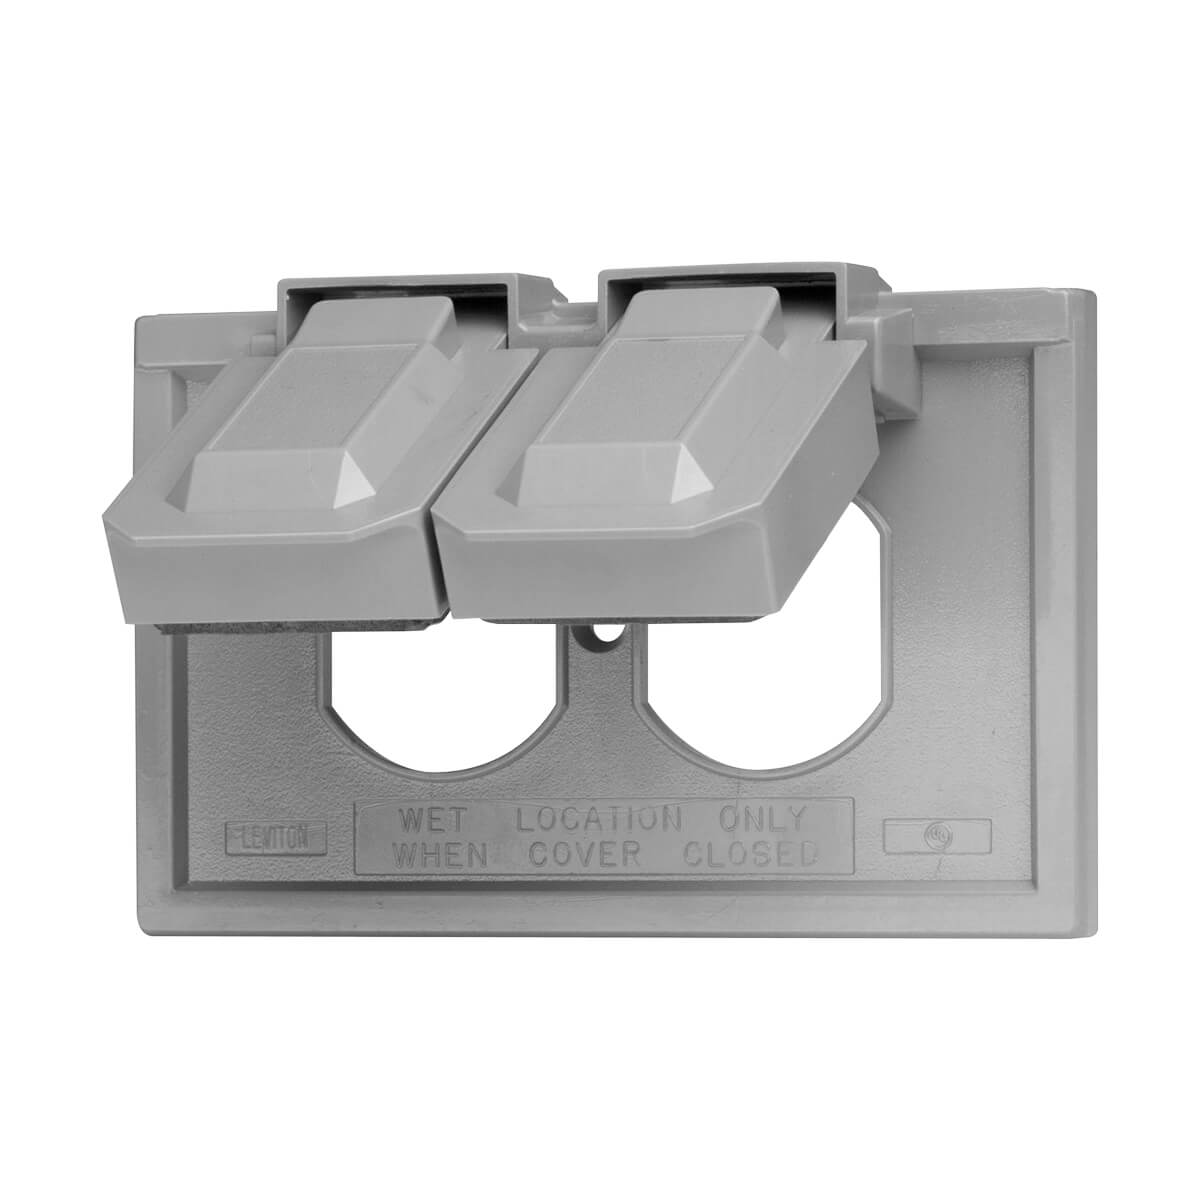 4976-GY 1-Gang Duplex Device Wallplate Cover - Weather-Resistant - Thermoplastic - Device Mount - Horizontal - Gray